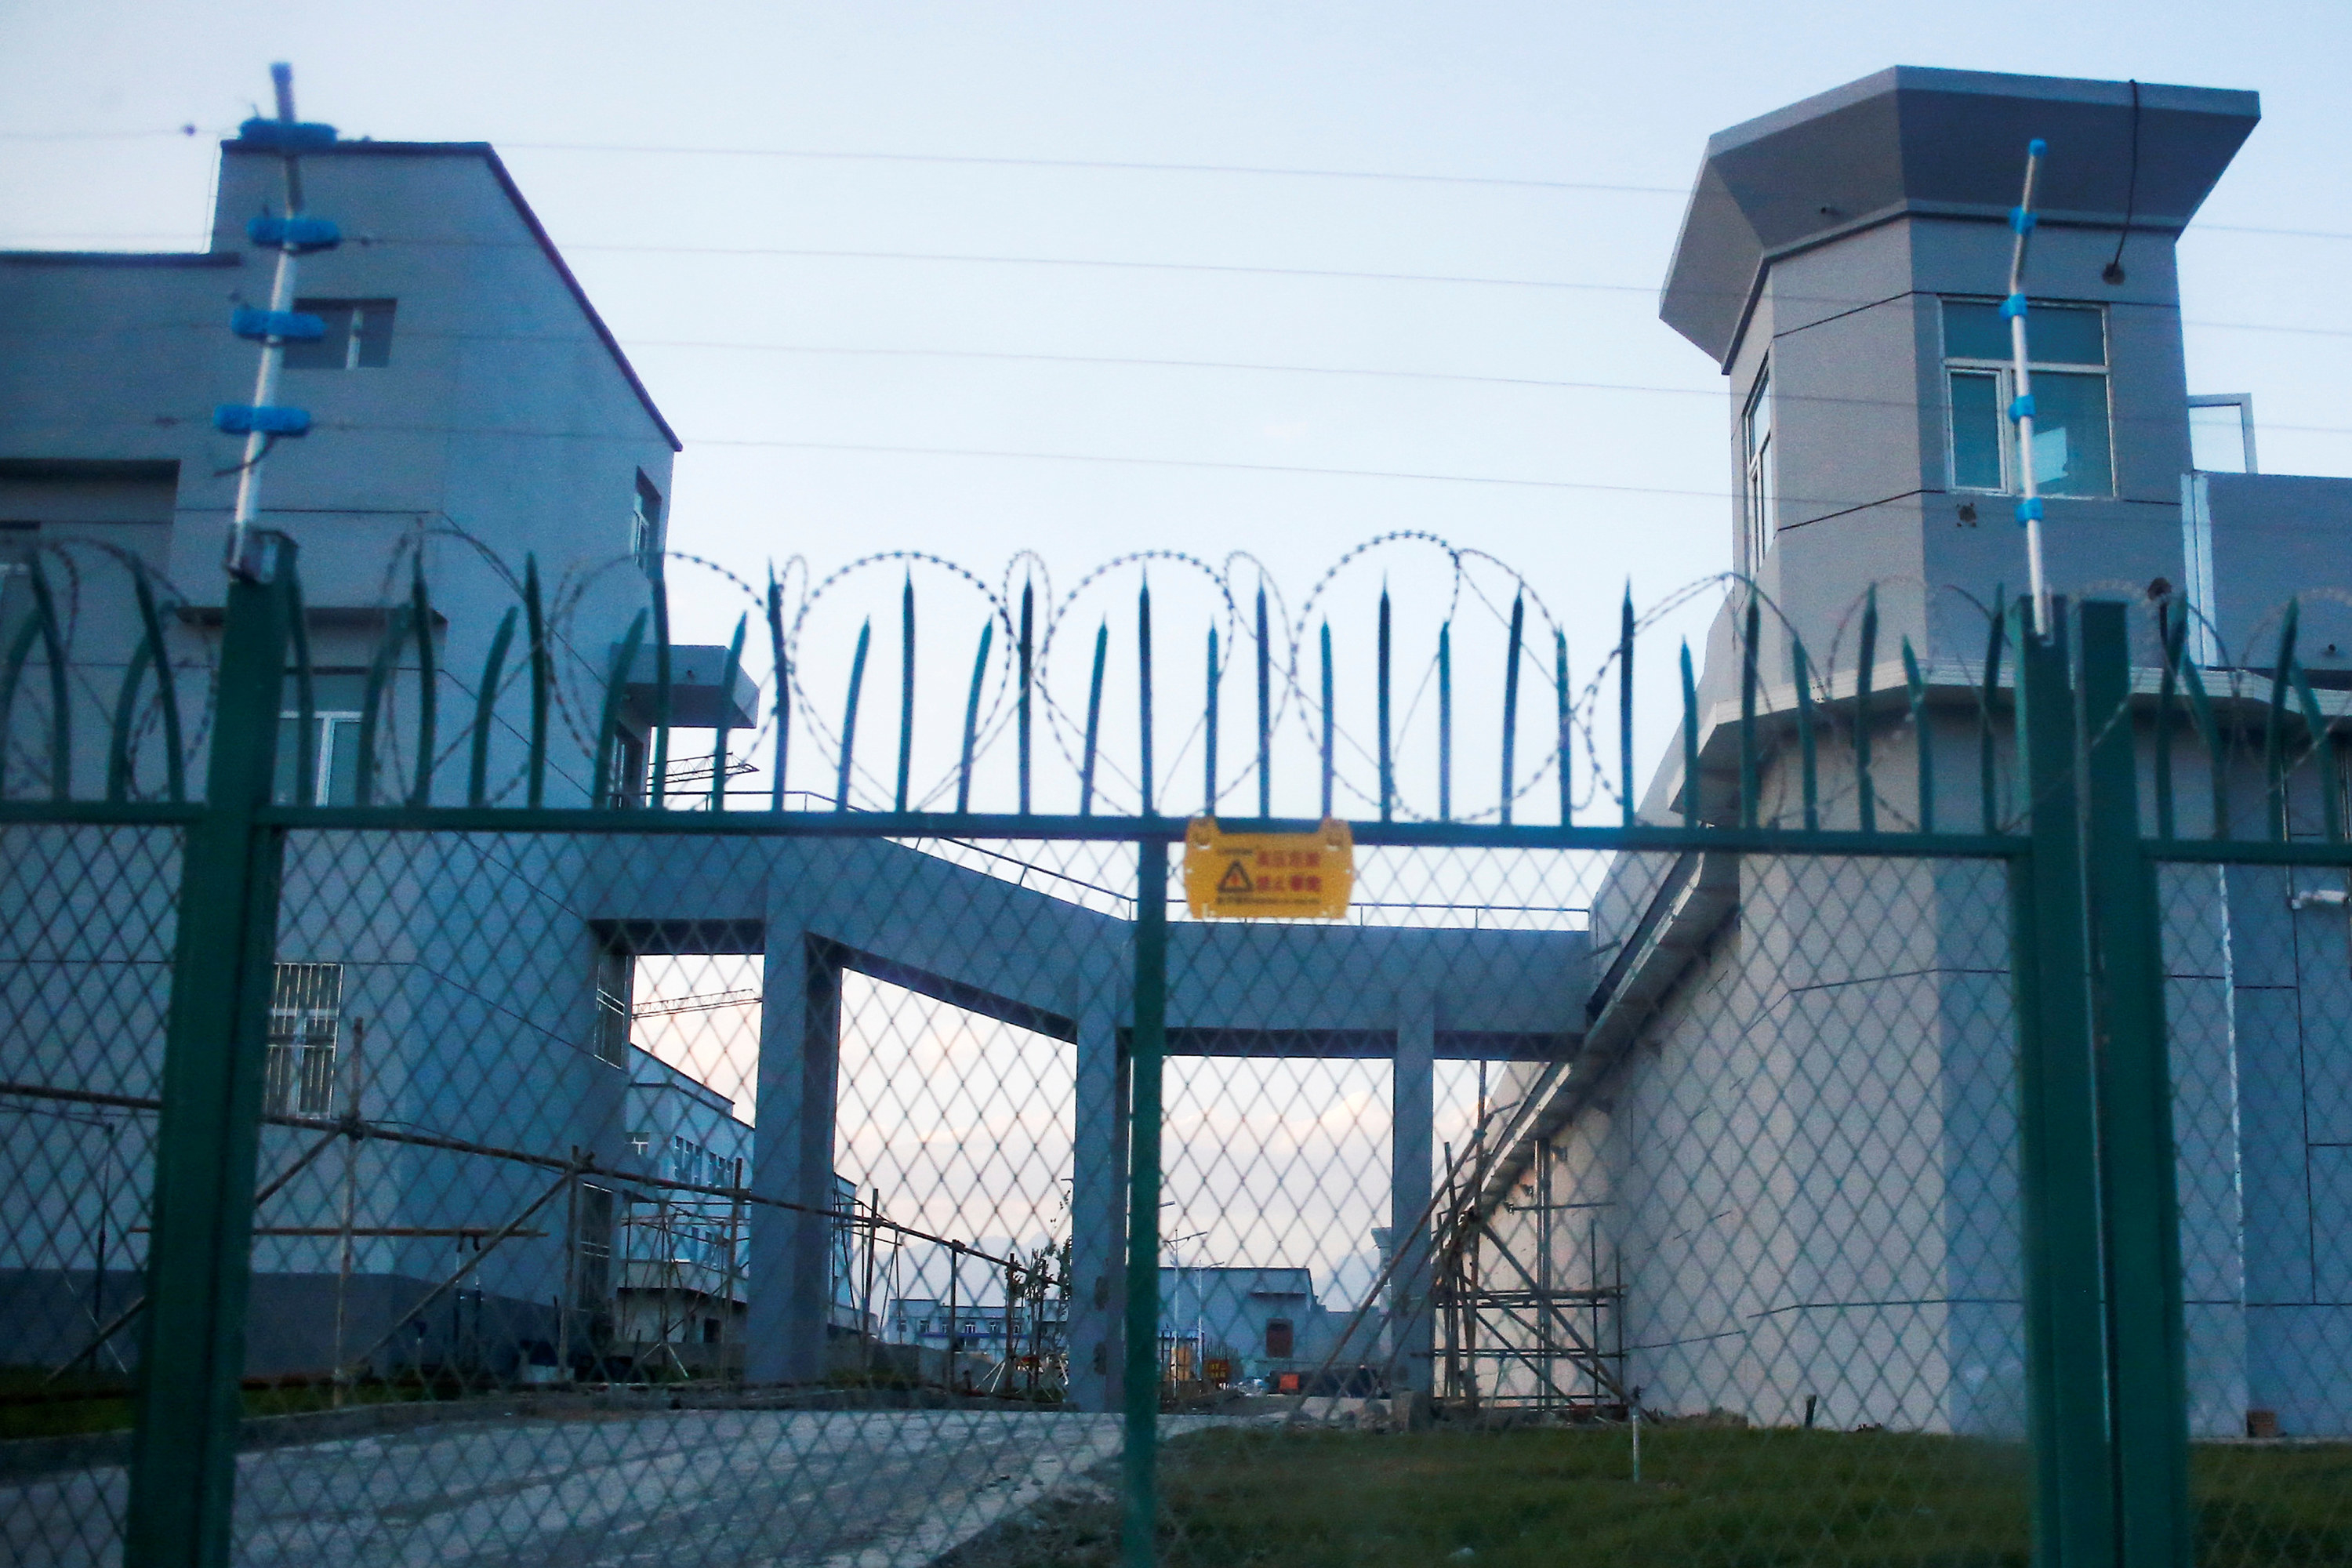 Barbed wire lines the top of a spiked fence in front of a large prisonlike complex